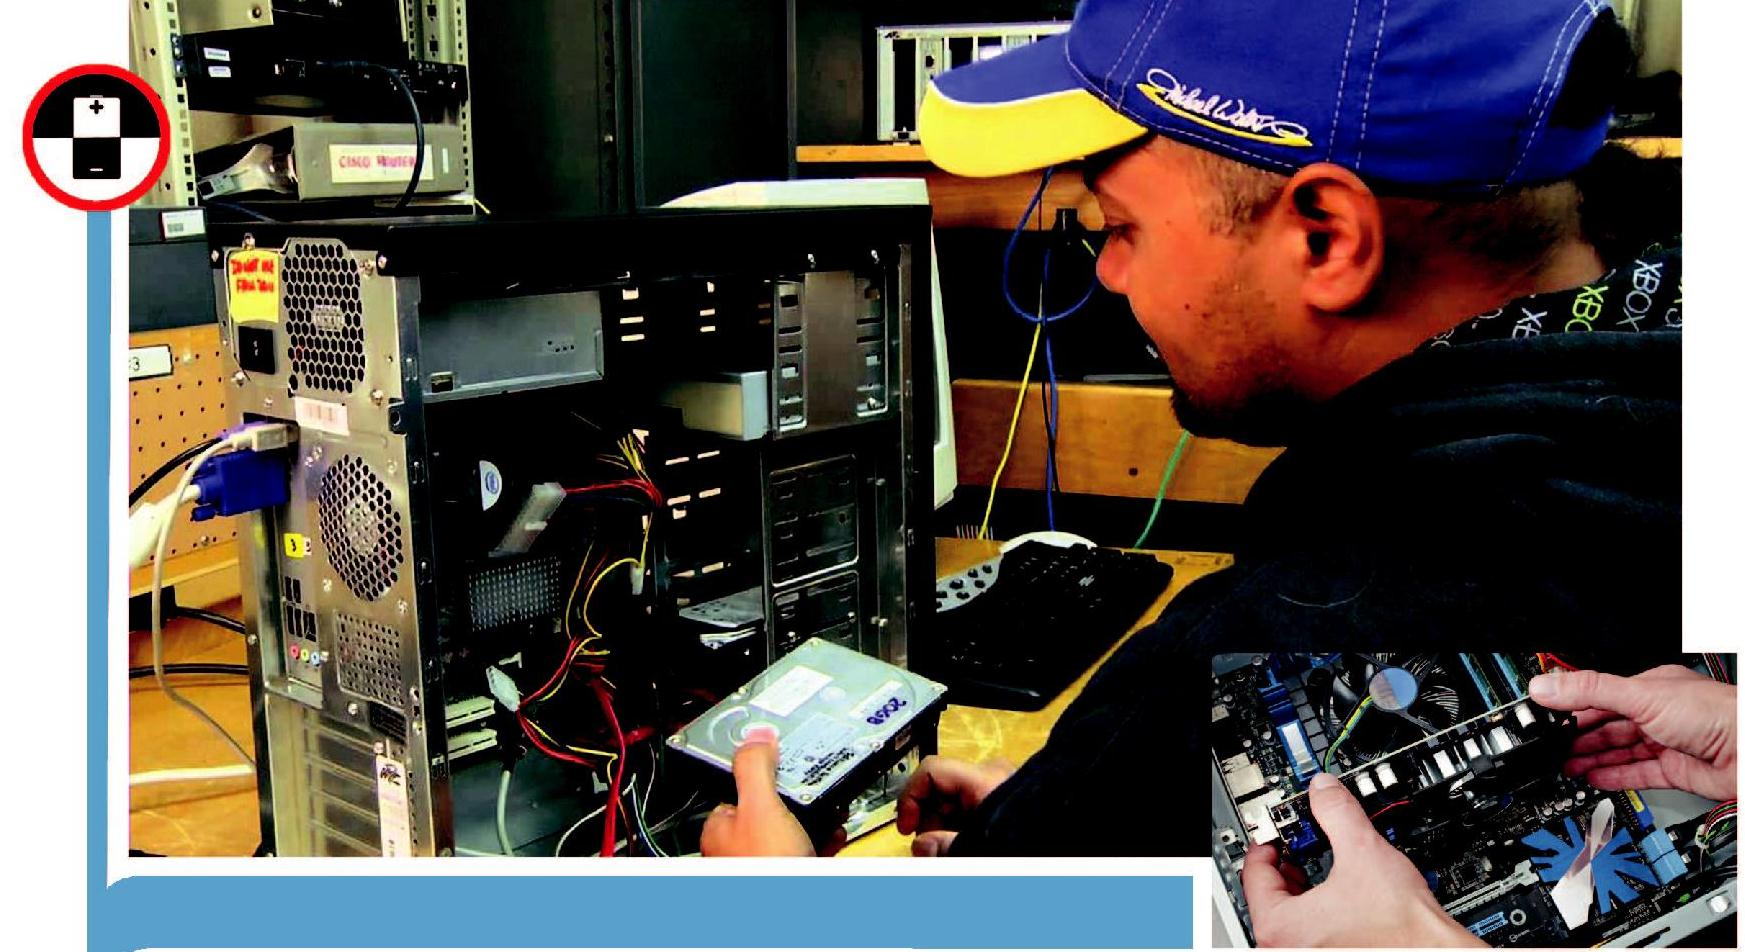 Installation Technician Computing and Peripherals:The individual at work is responsible for installing newly purchased products, troubleshooting system problems and, configuring peripherals such as printers, scanners and network devices.